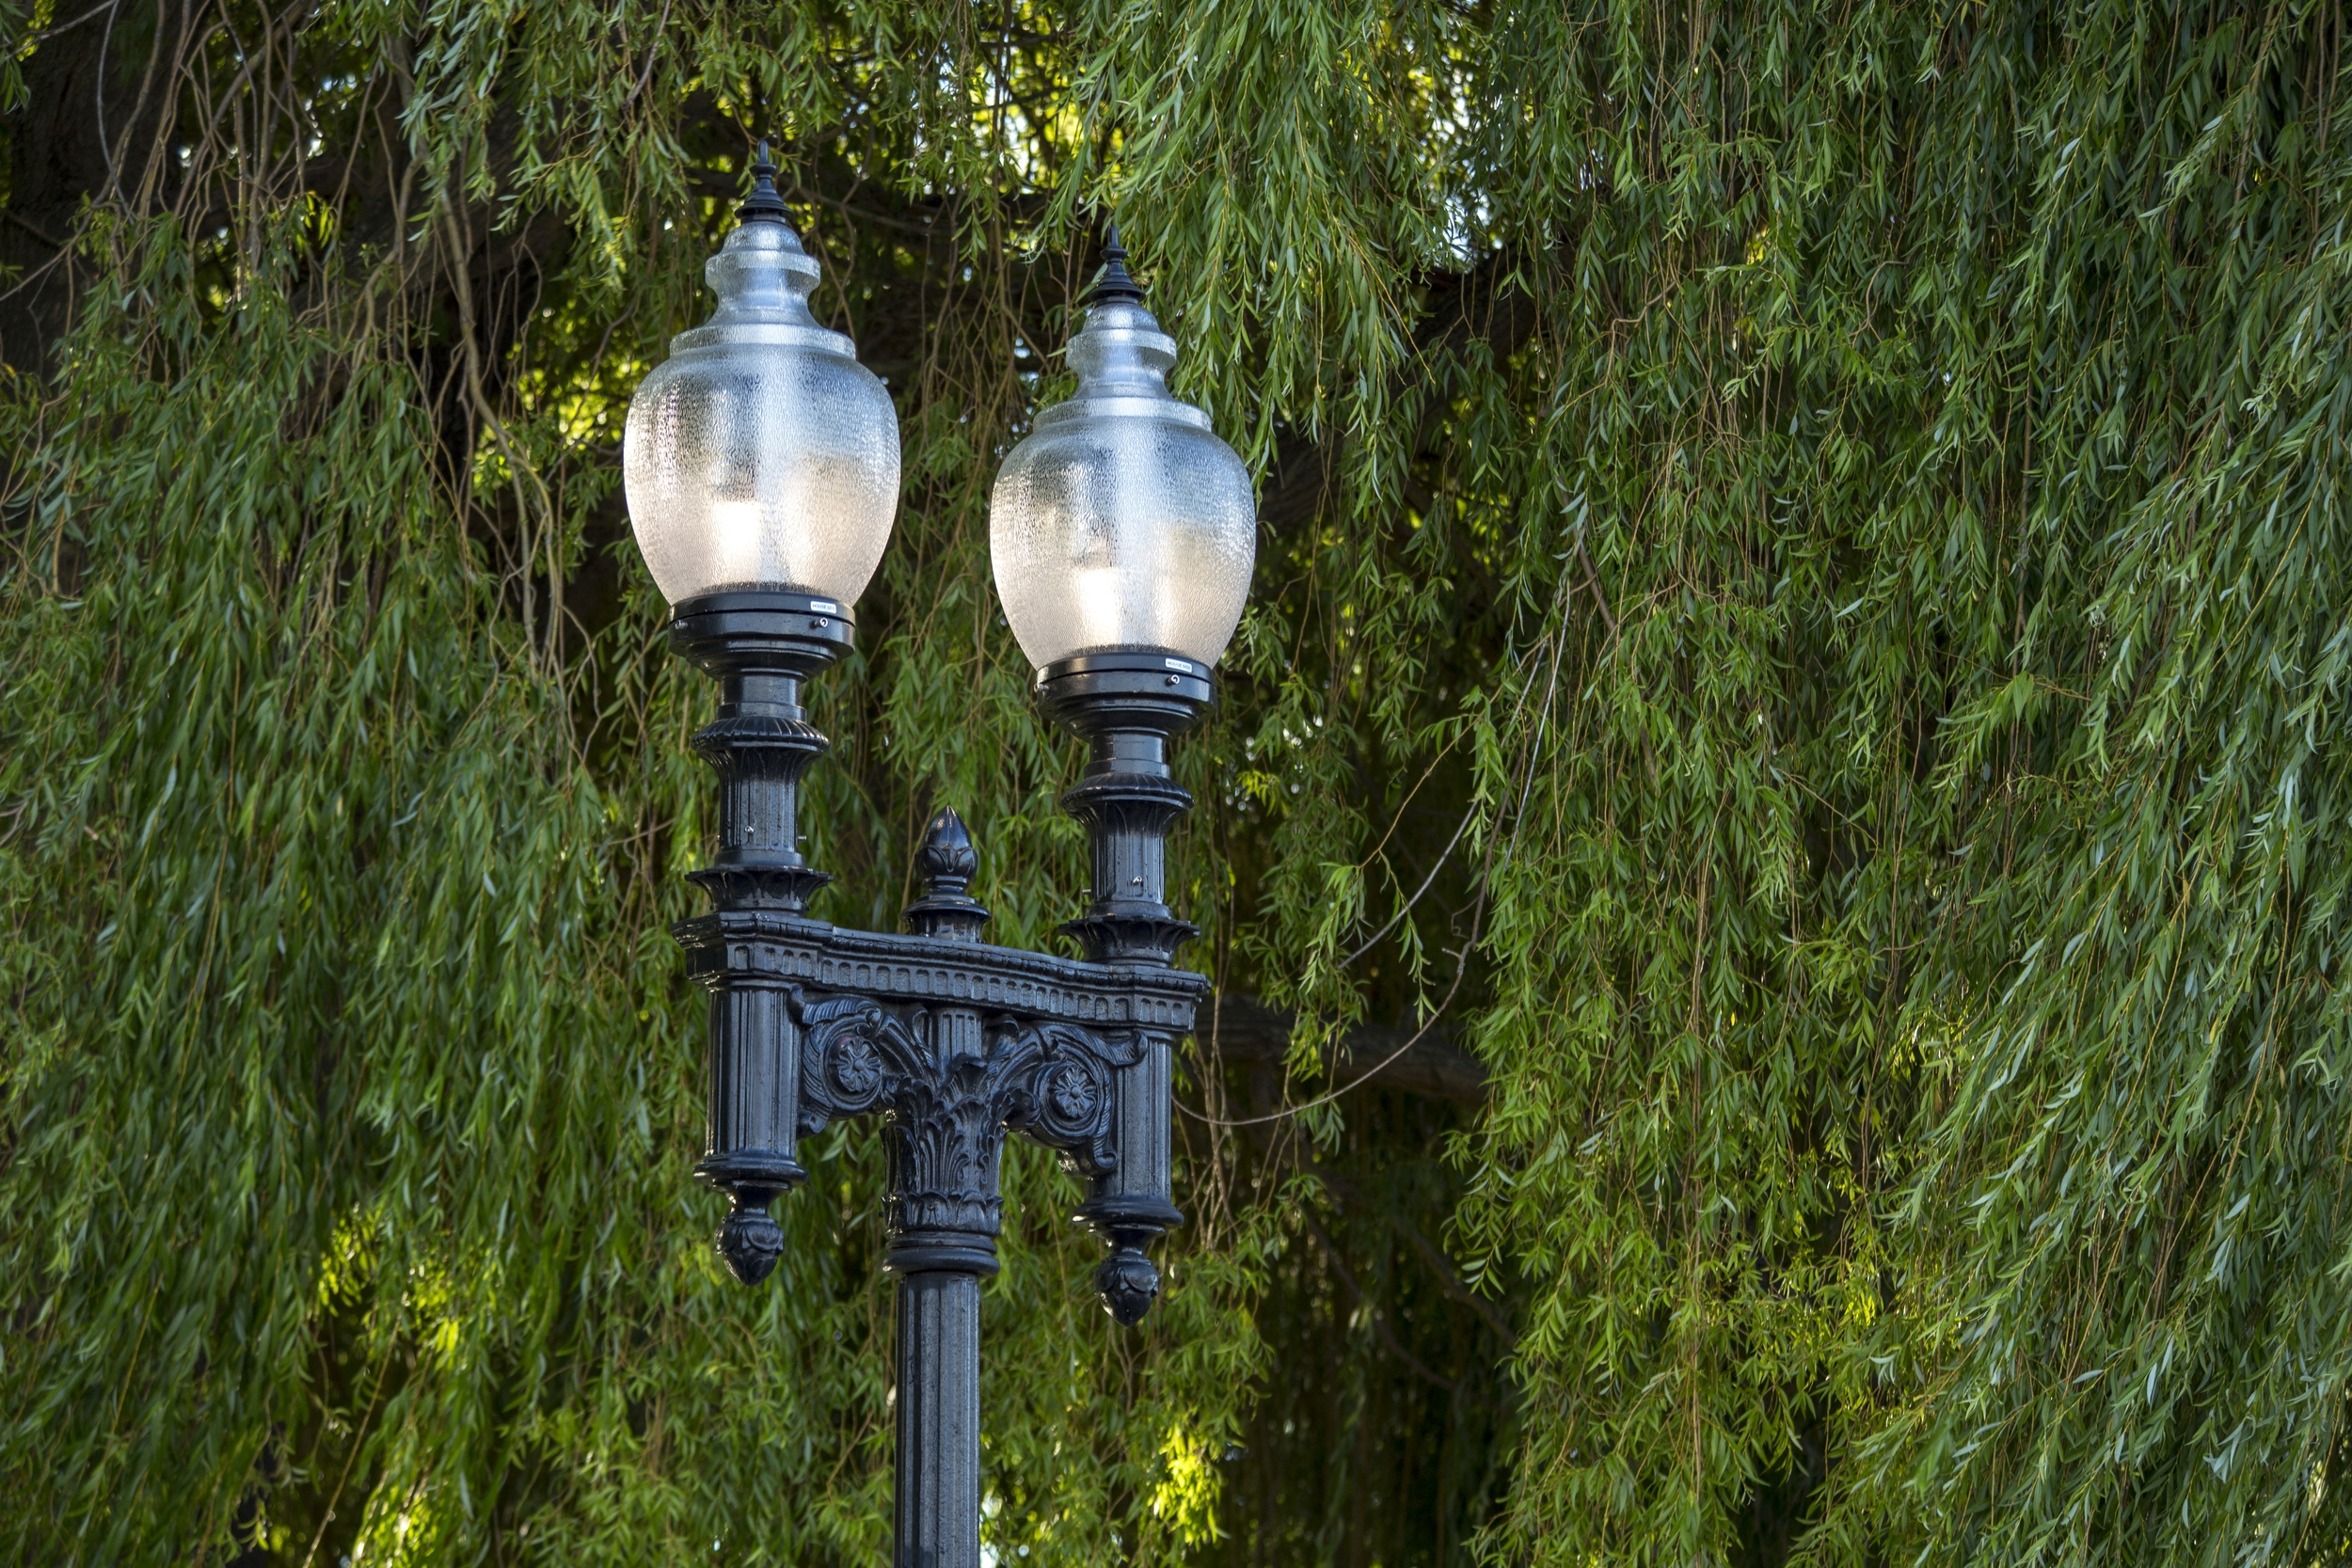 Mischa Kuball,  Solidarity Grid , 2013-2015.Boston street lamp in situ on Park Terrace,Christchurch (night, detail).Commissioned by the Christchurch City Council Public Art Advisory Group.Produced by SCAPE Public Art. Photo by Duncan Shaw-Brown.